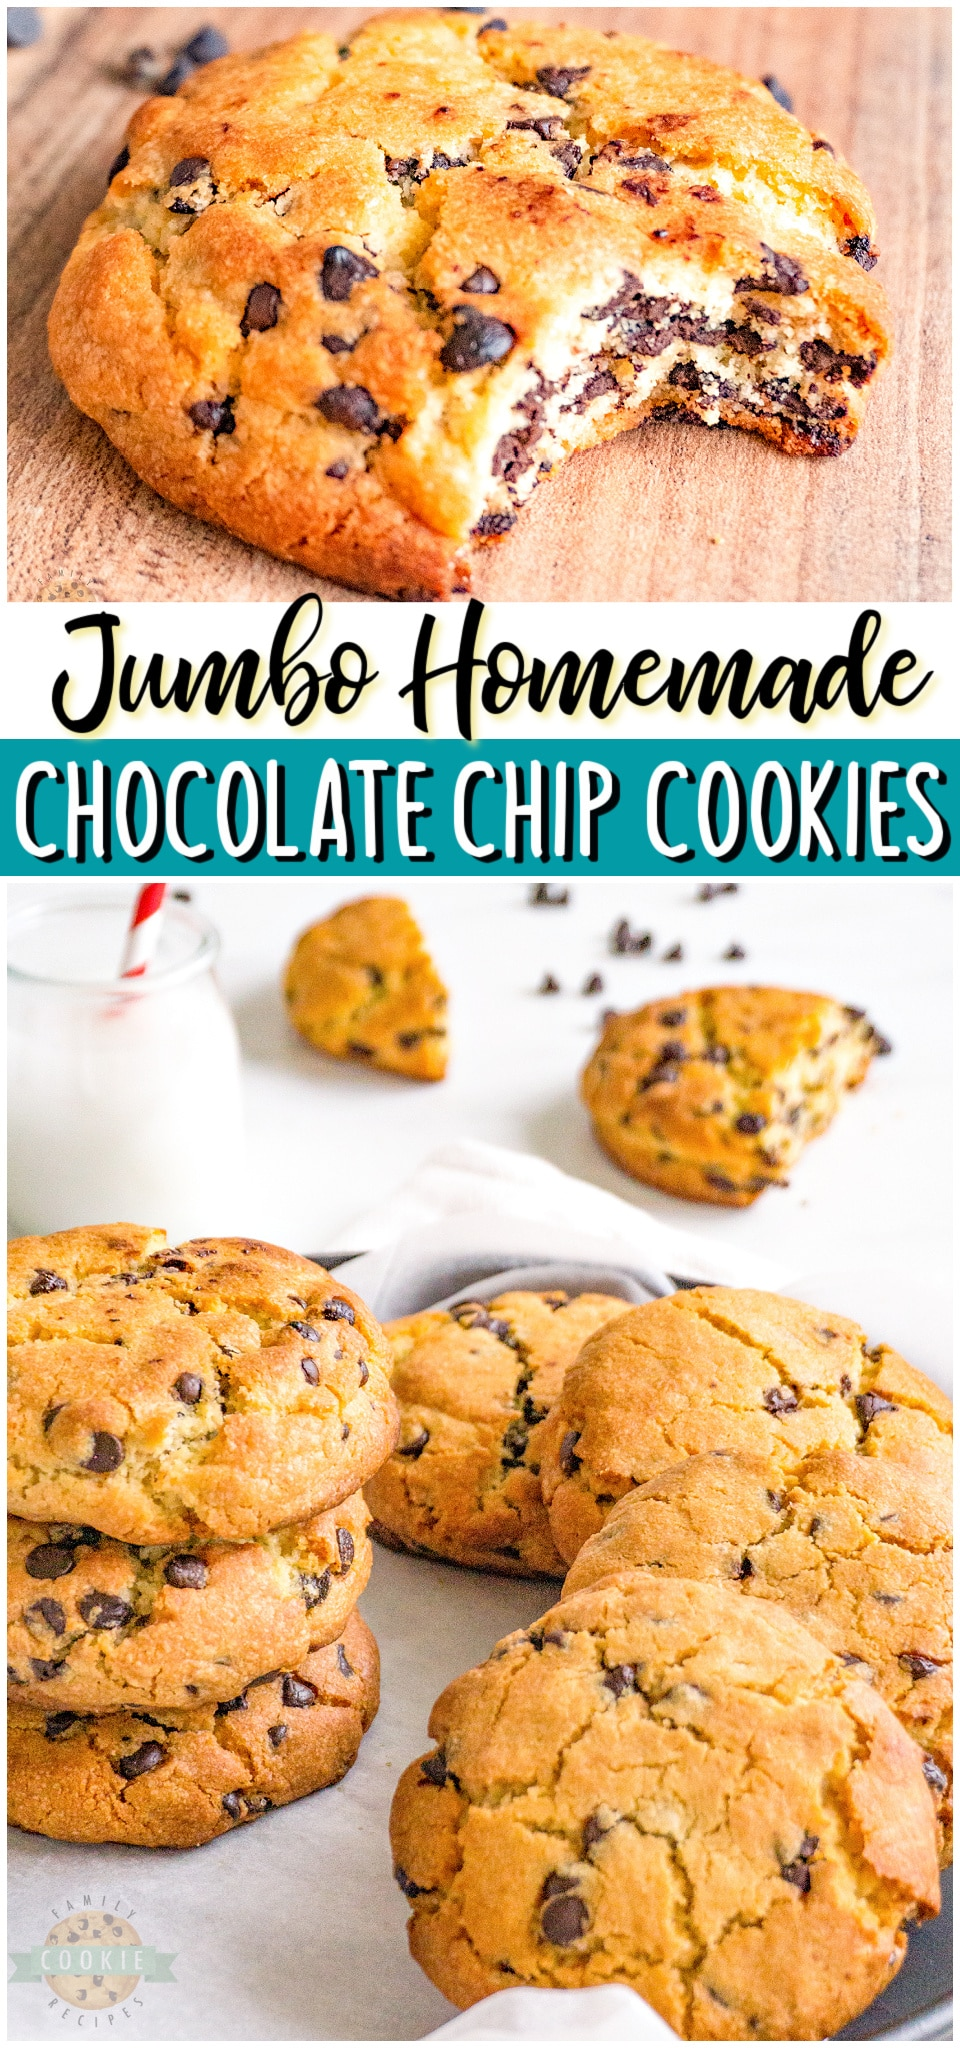 Jumbo Chocolate Chip Cookies made with classic ingredients & twice the size of traditional cookies! Soft, chewy & thick chocolate chip recipe perfect for cookie lovers!#chocolatechip #cookies #jumbo #big #baking #homemade #easyrecipe from FAMILY COOKIE RECIPES via @familycookierecipes